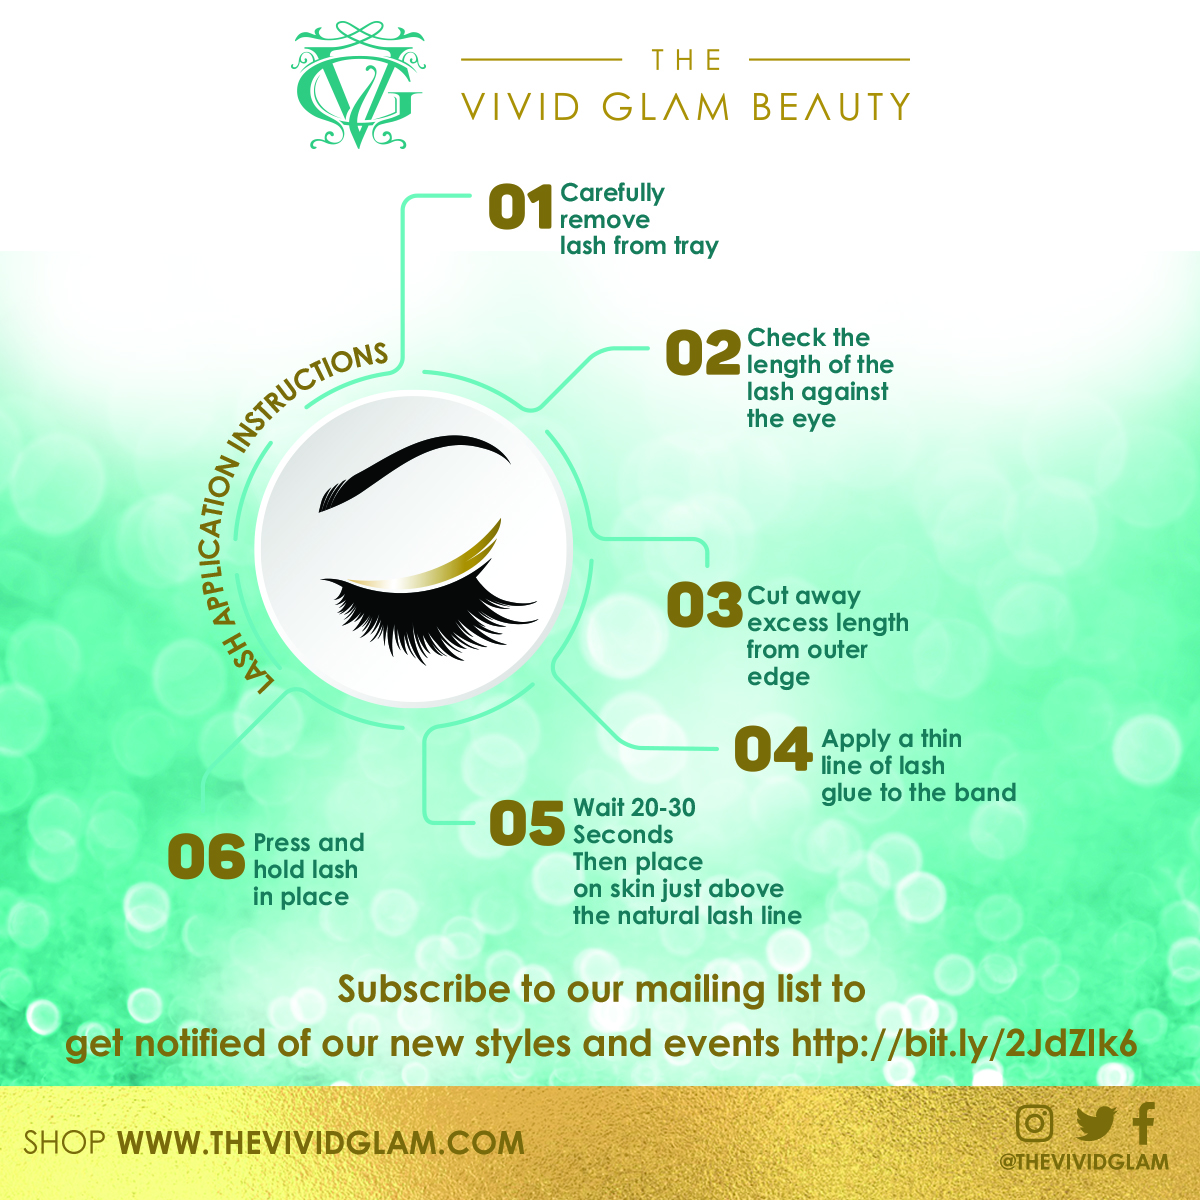 The Vivid Glam Lash Installation Instructions card